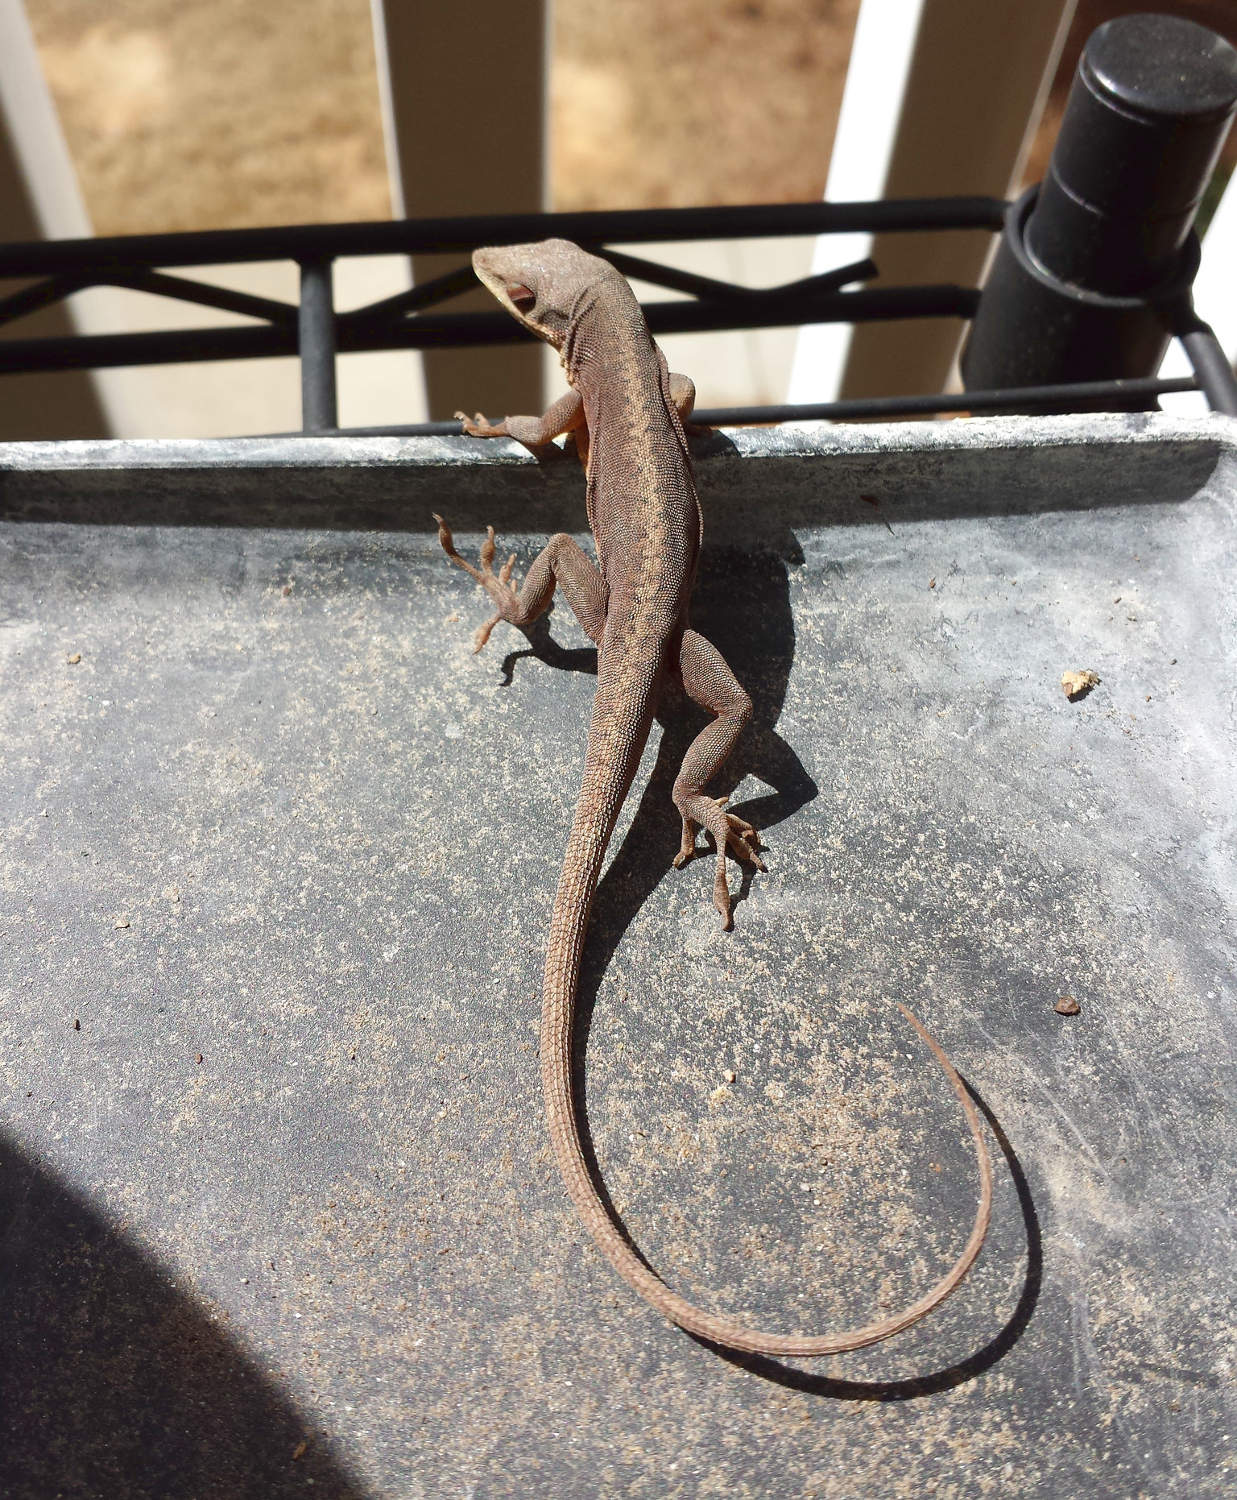 I have a lizard for a neighbor